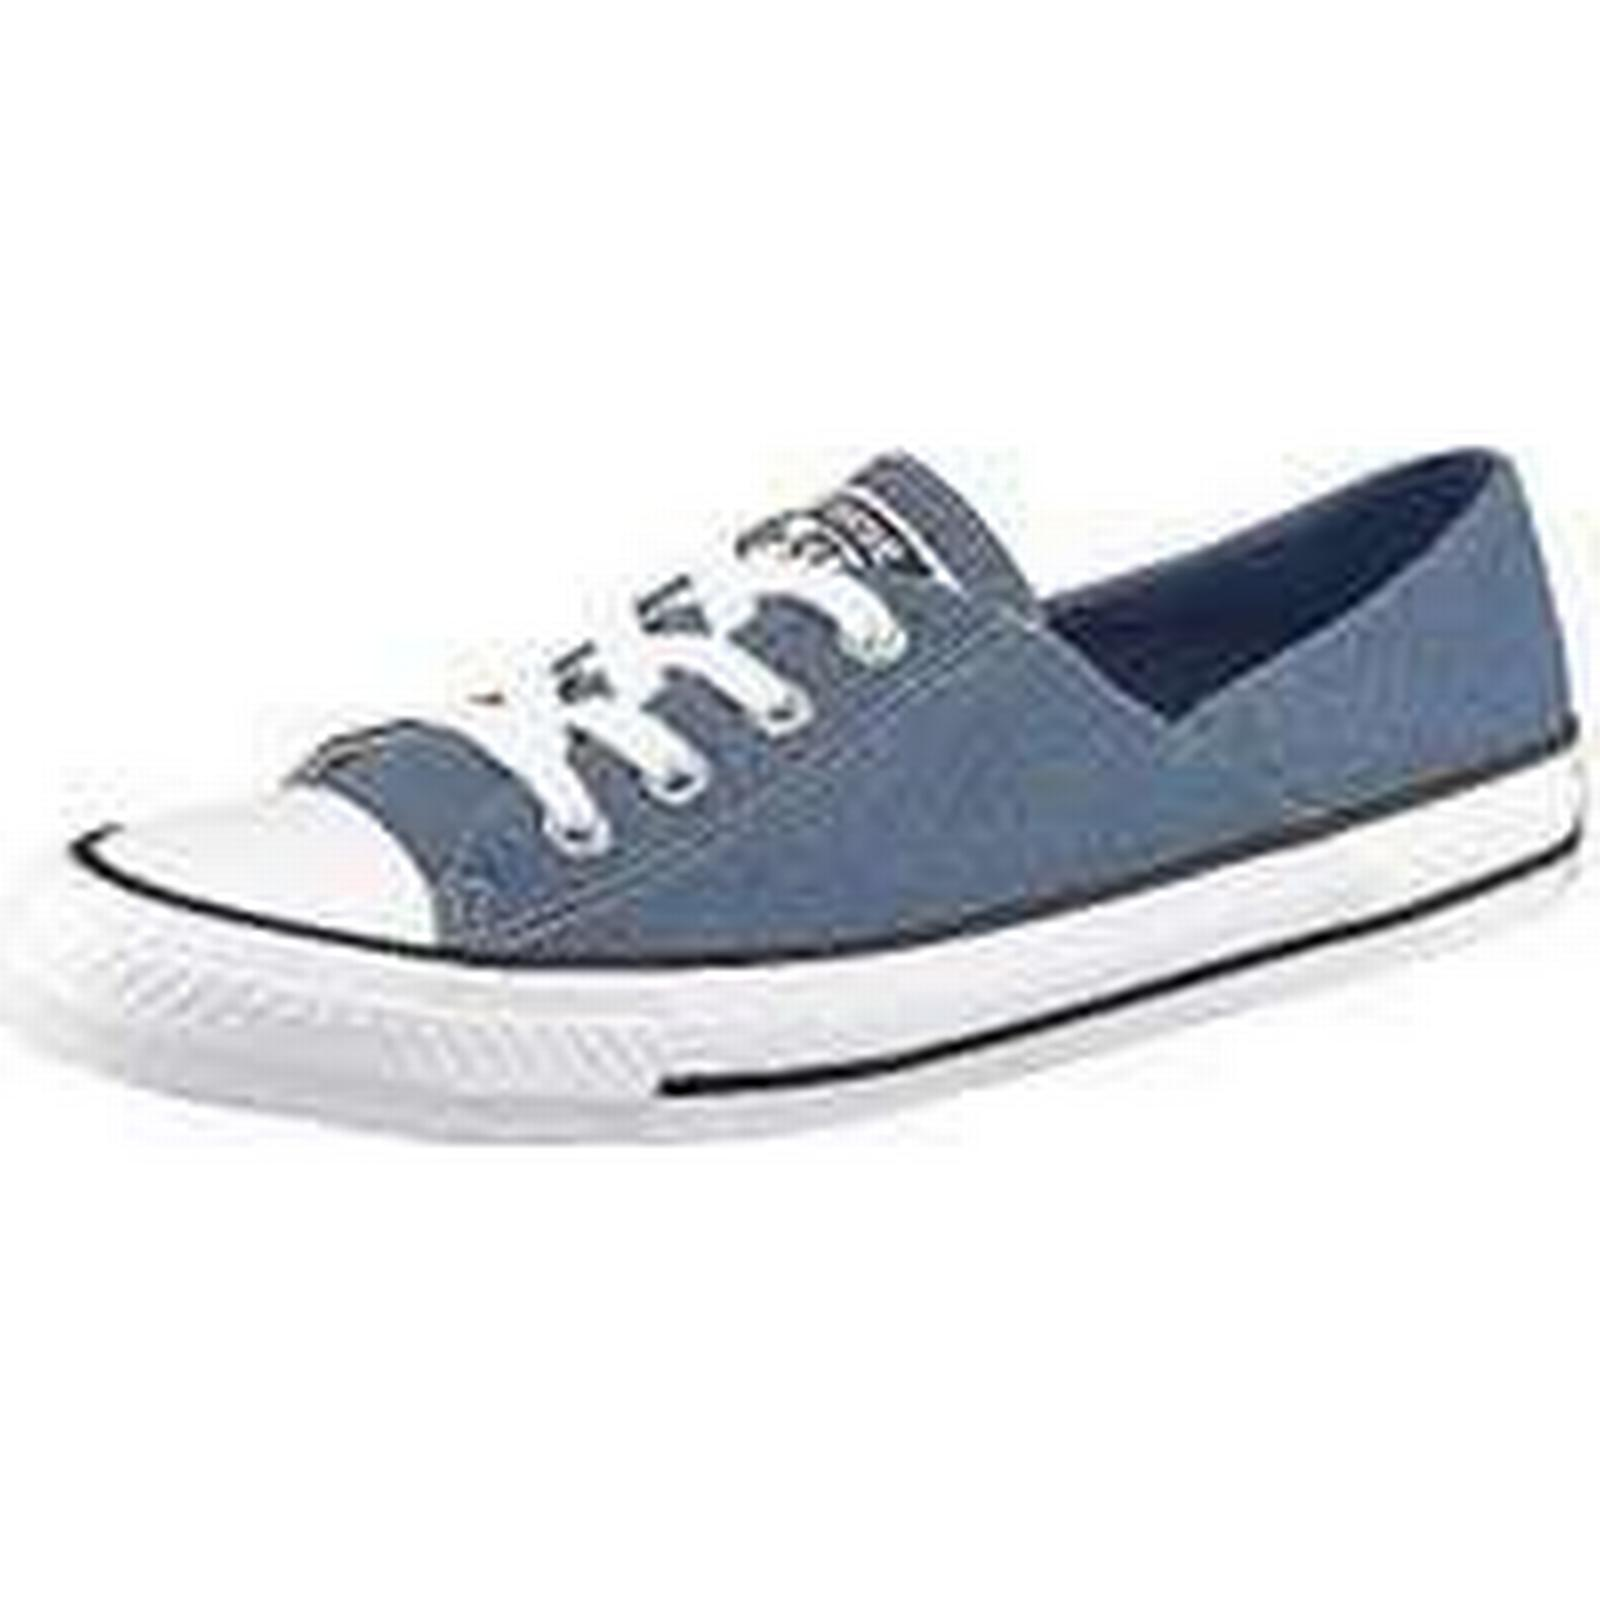 Converse Blue Taylor 'Chuck Taylor Blue All Star Coral' Trainers by Converse 830522